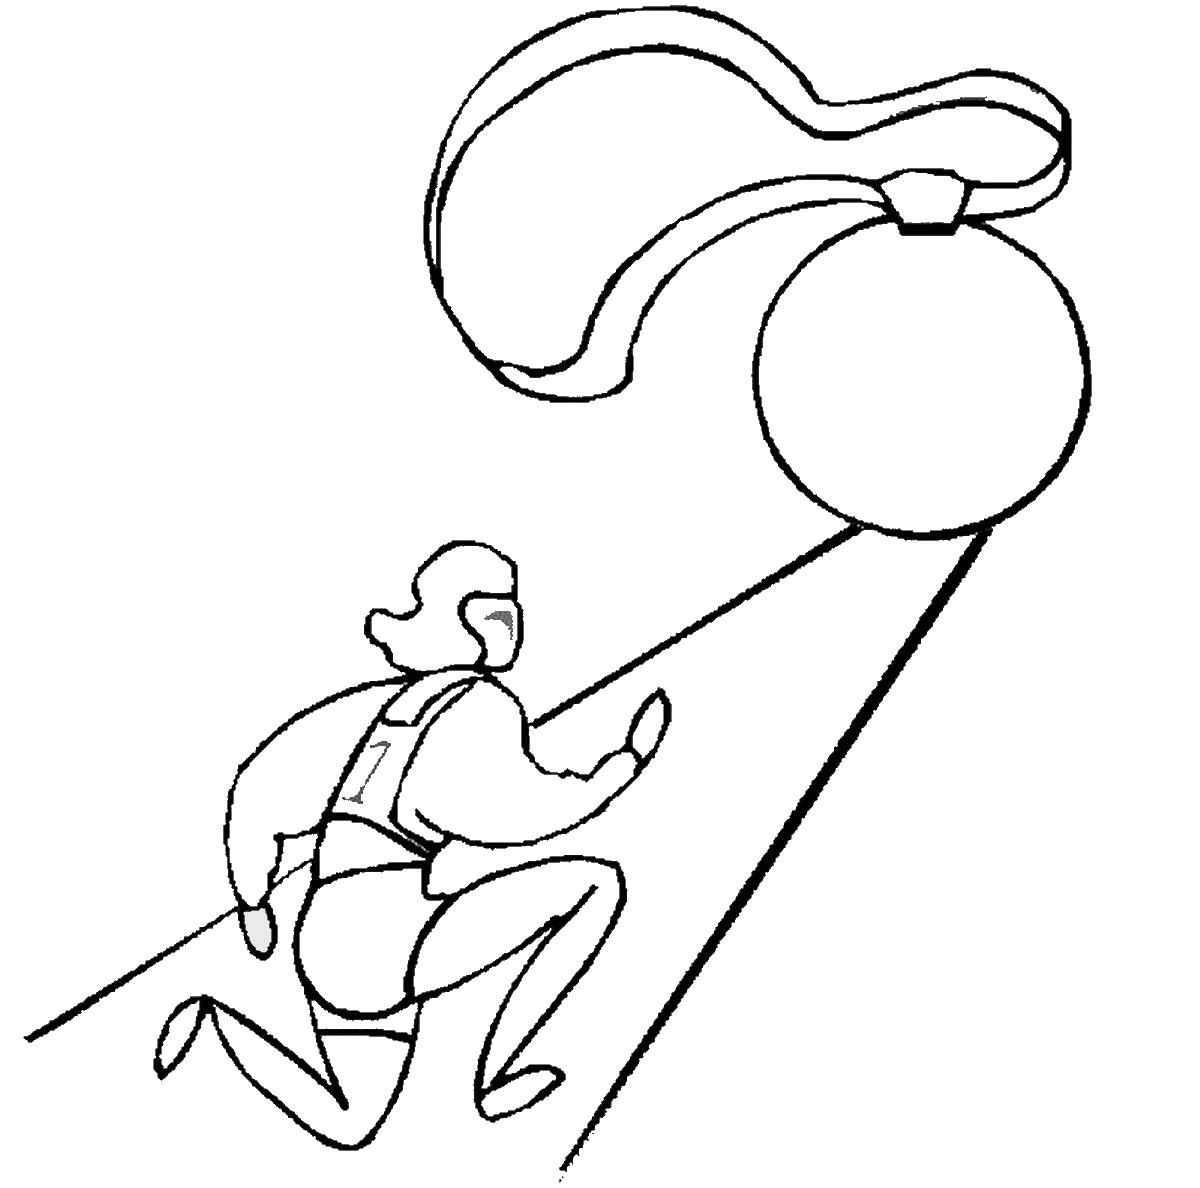 Olympics Coloring Pages